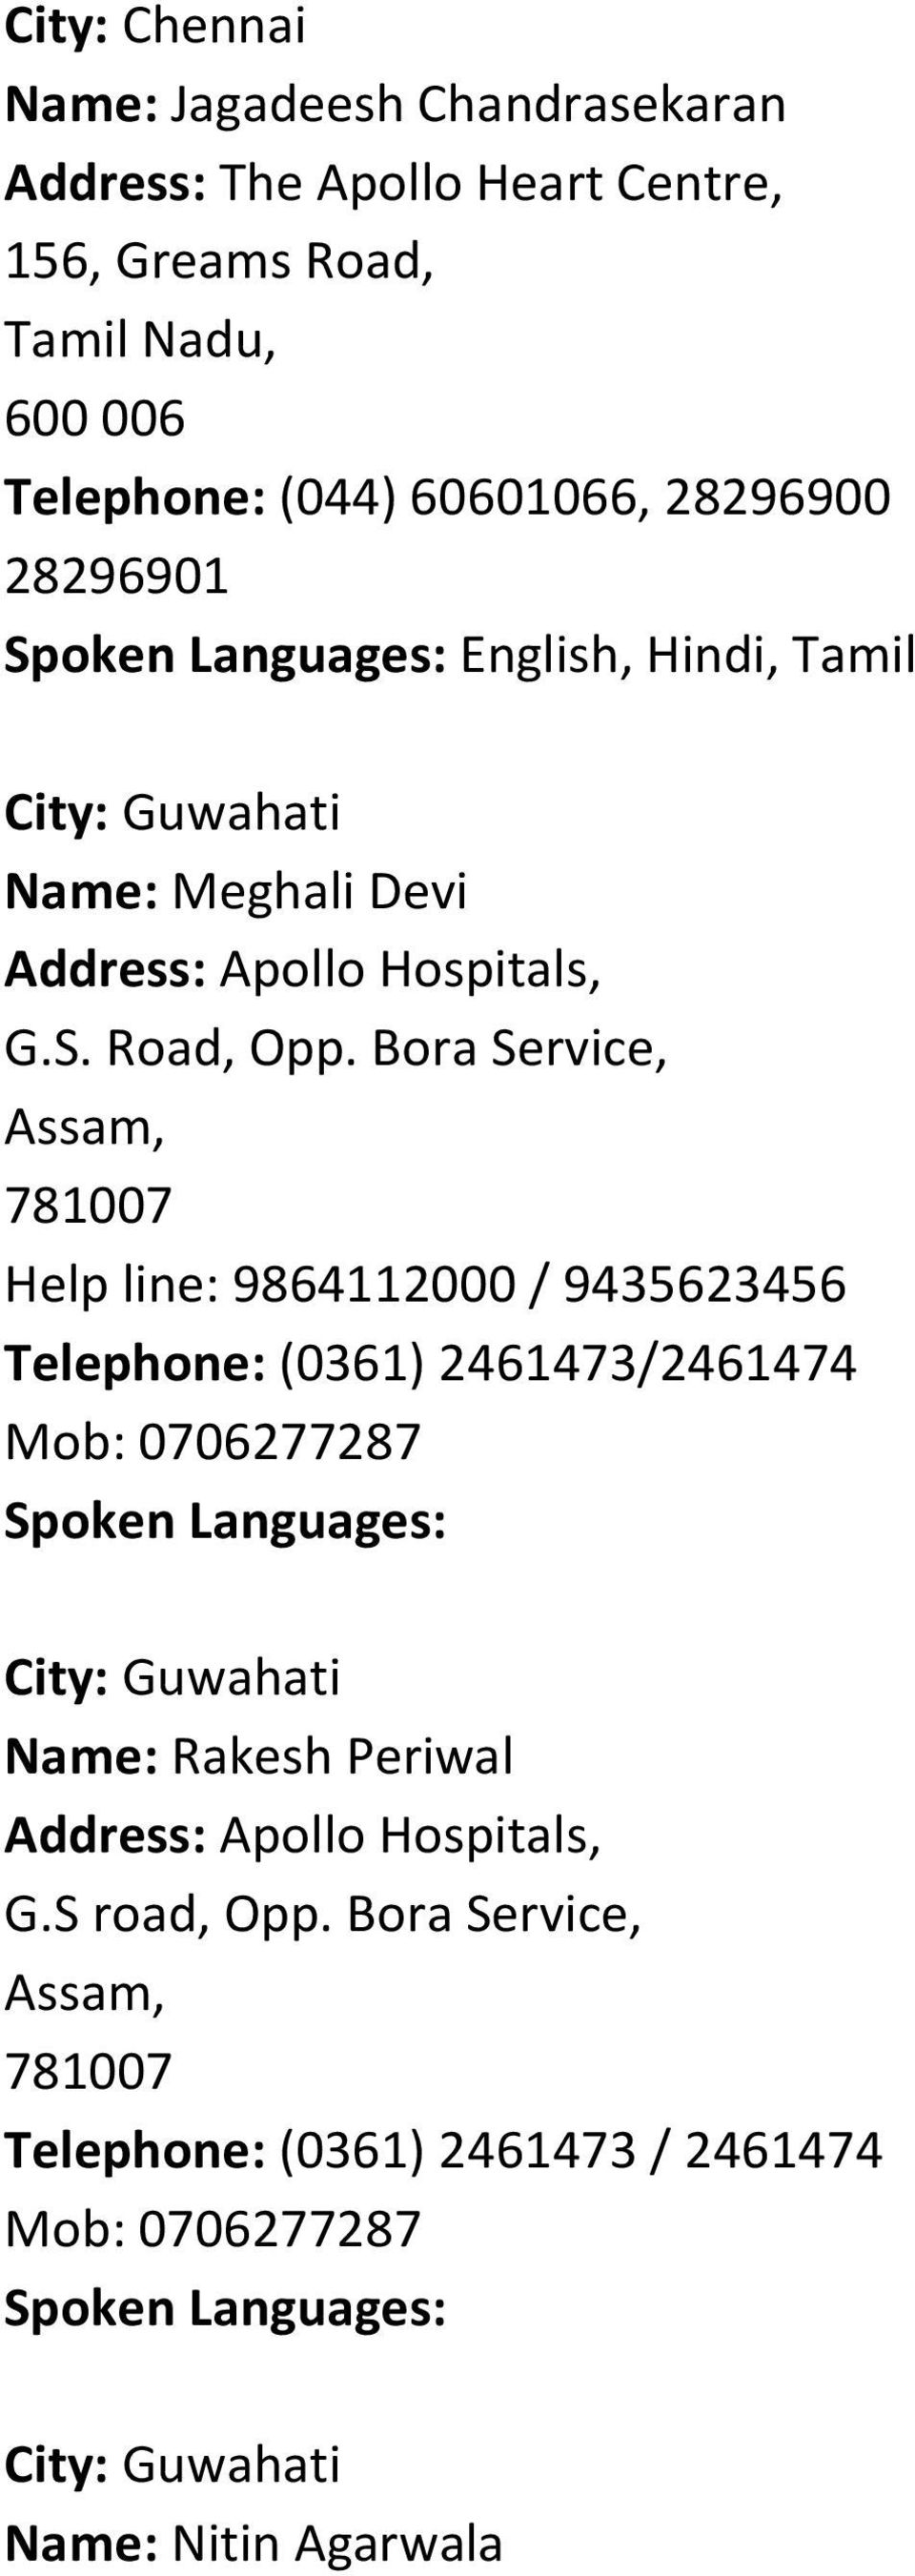 Bora Service, Assam, 781007 Help line: 9864112000 / 9435623456 Telephone: (0361) 2461473/2461474 Mob: 0706277287 City: Guwahati Name: Rakesh